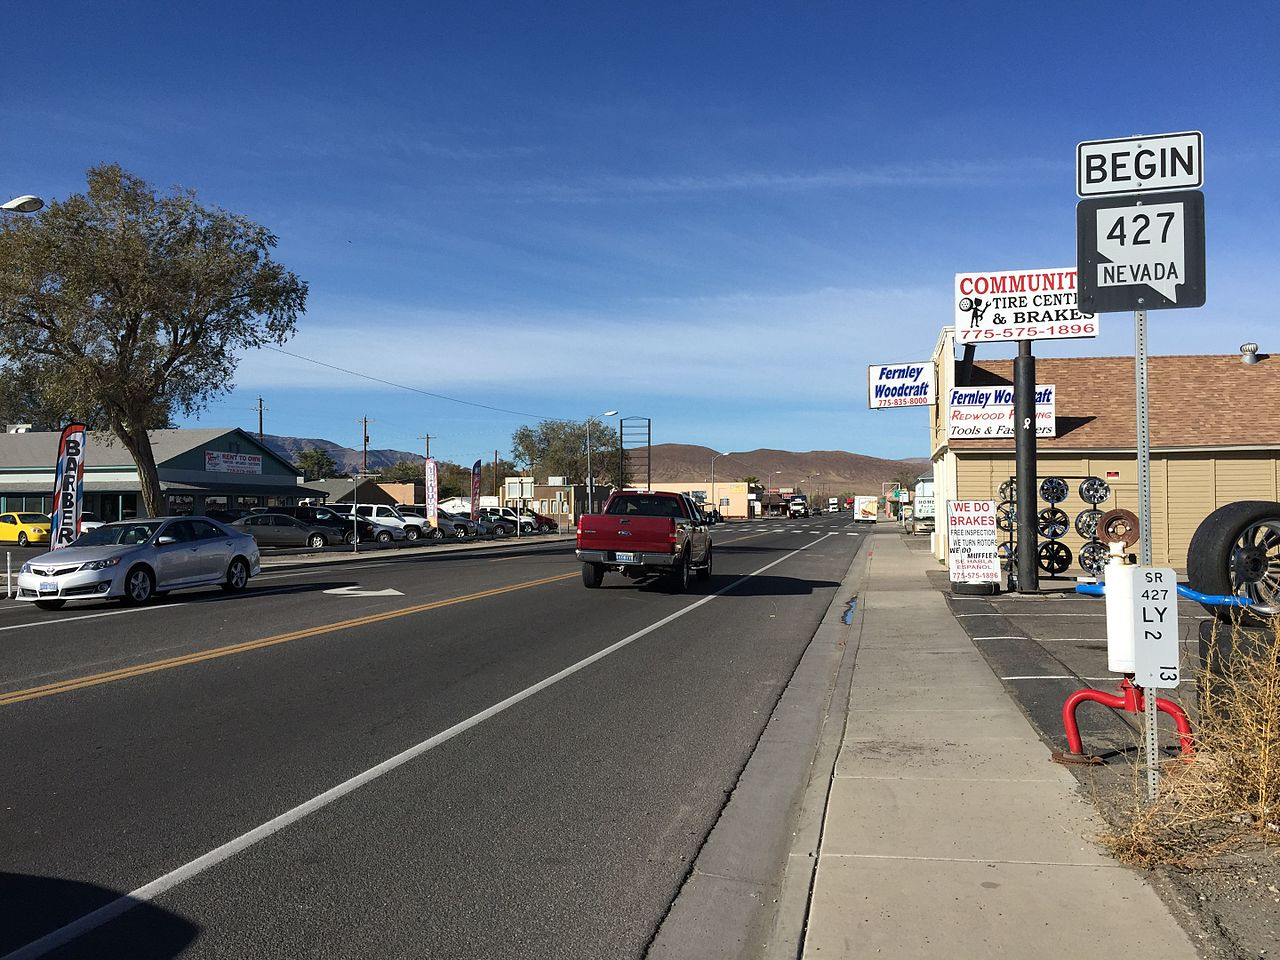 2015-10-30_10_09_36_View_west_along_Main_Street_(Nevada_State_Route_427)_in_Fernley,_Nevada